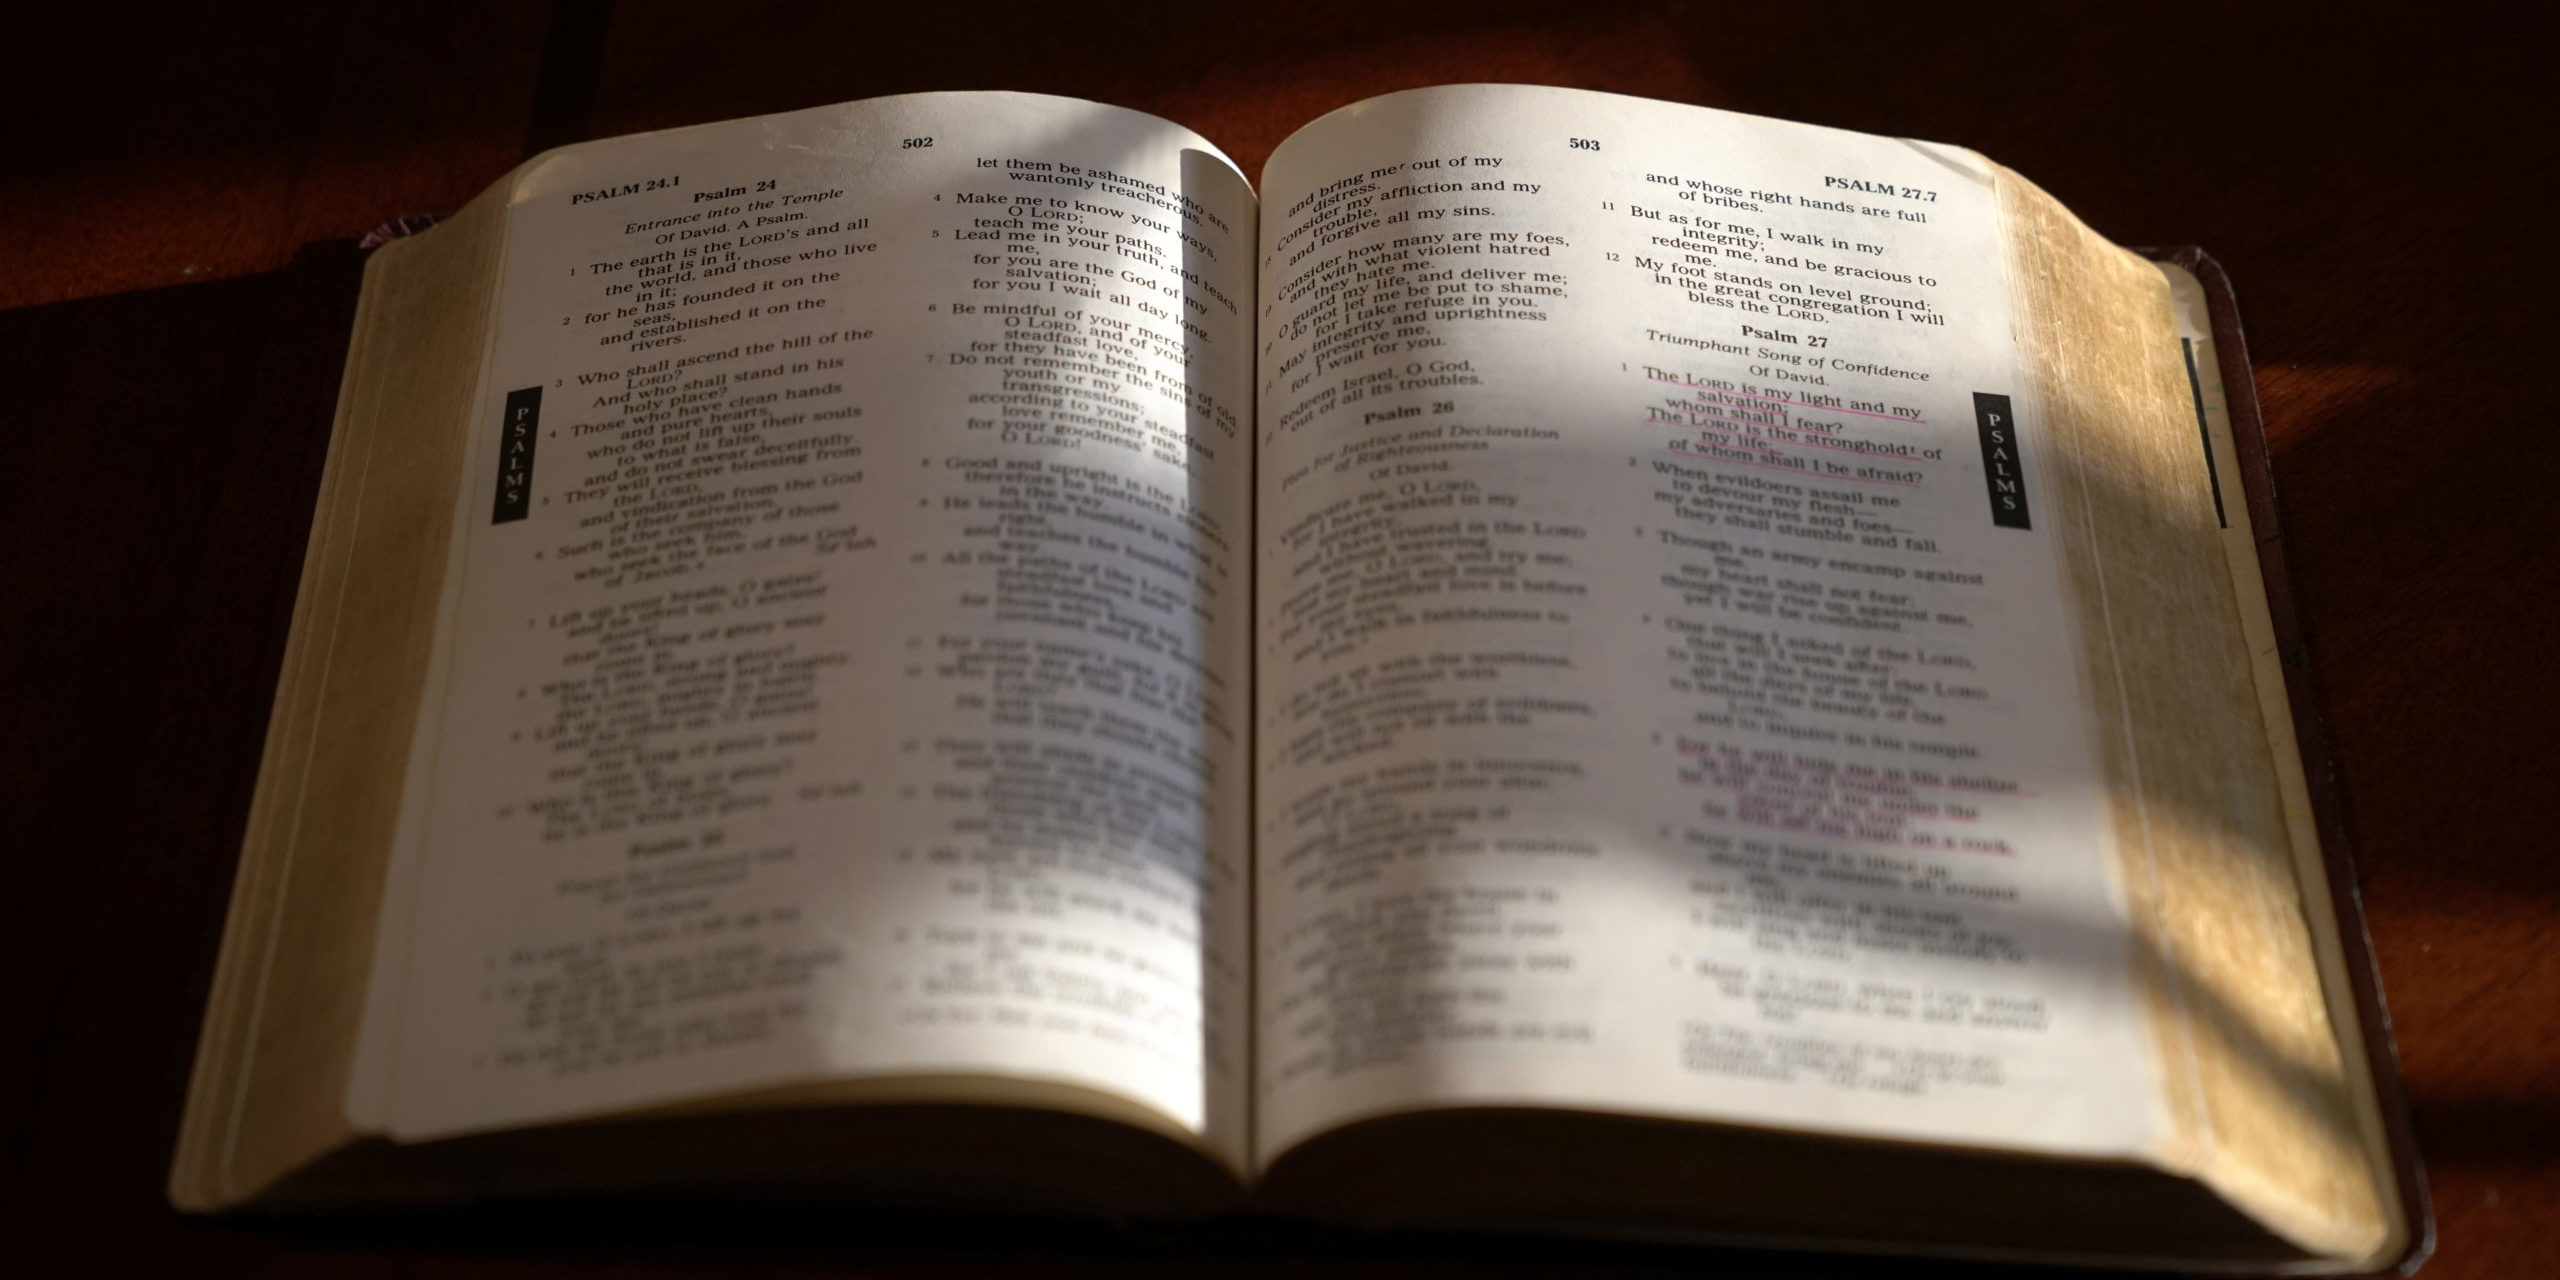 Open bible on a dark wood table with light and focus on Psalm 27